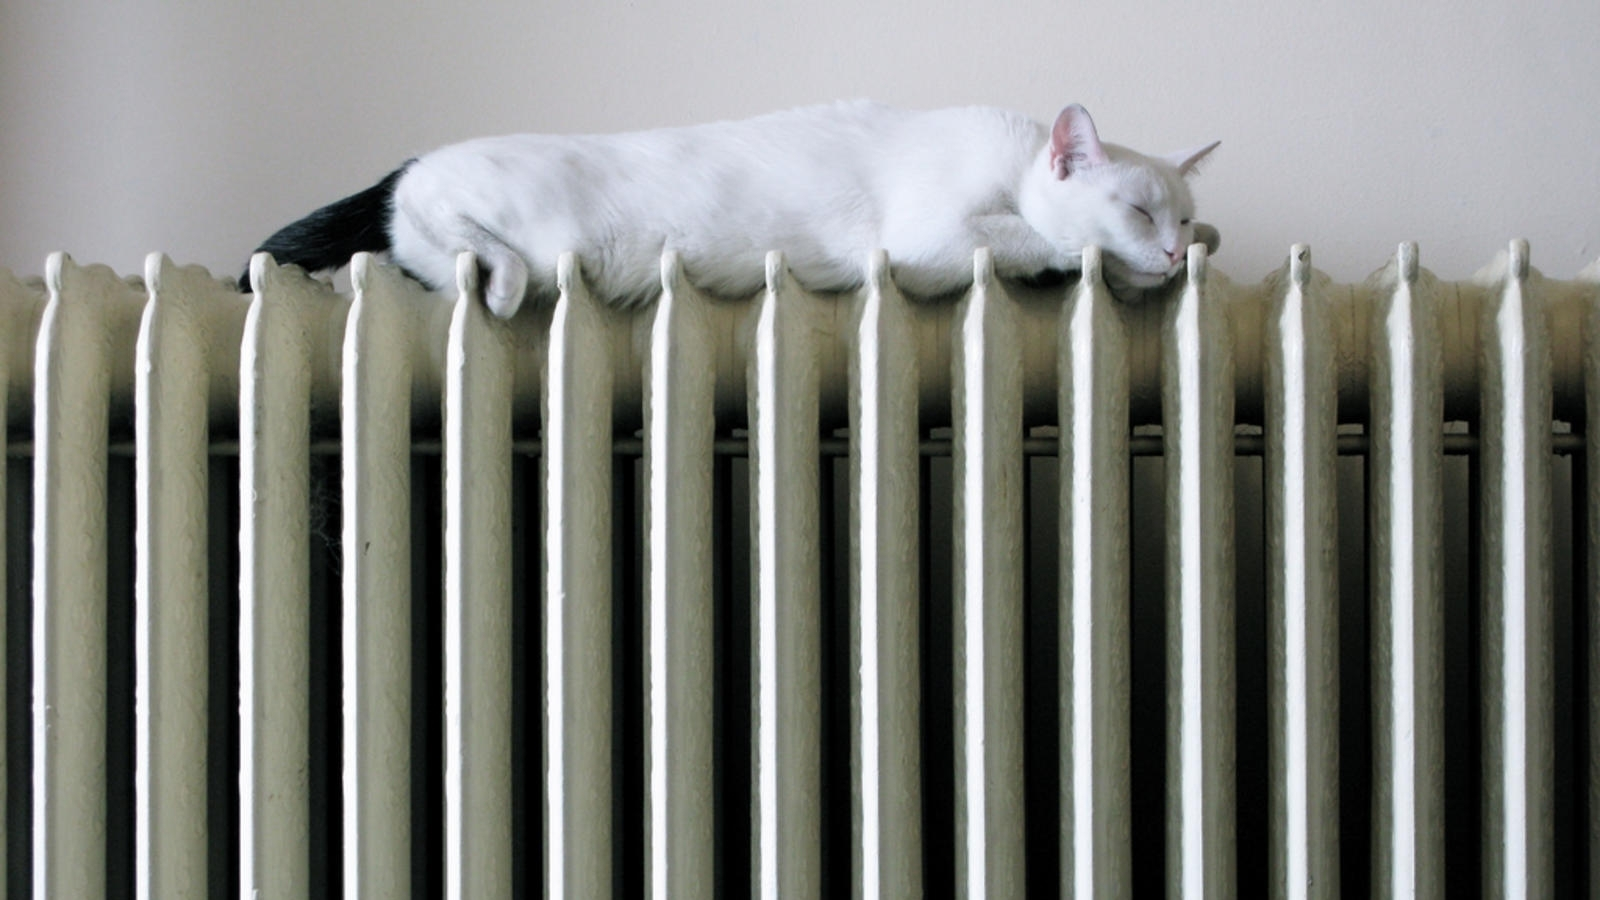 dog-heating-dan-goodwin-by-sa.jpg